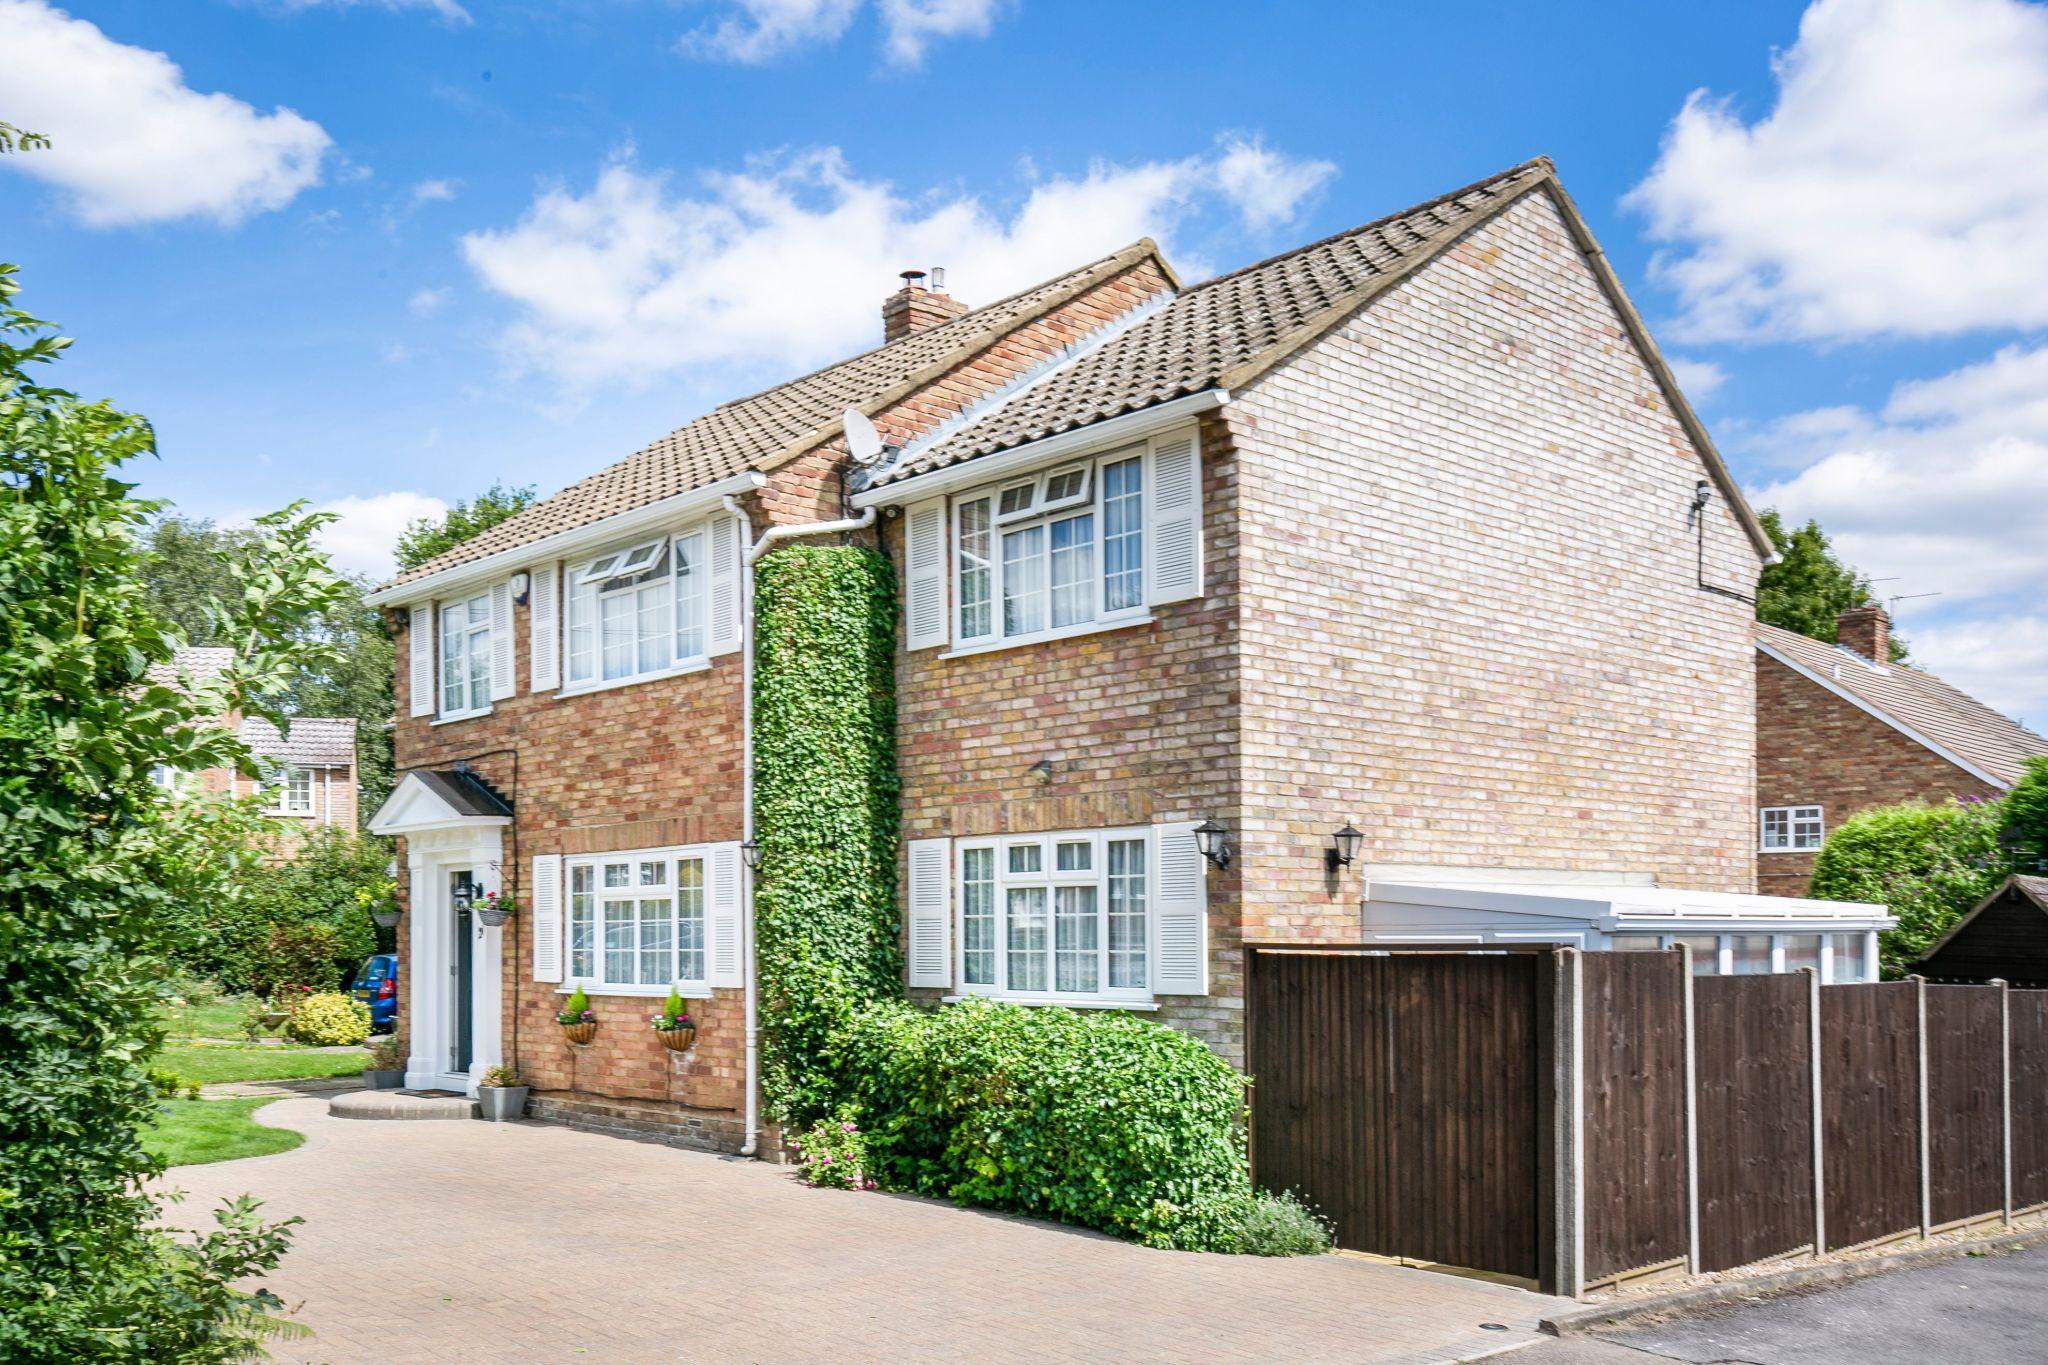 4 bedroom detached house For Sale in Potters Bar - Photograph 21